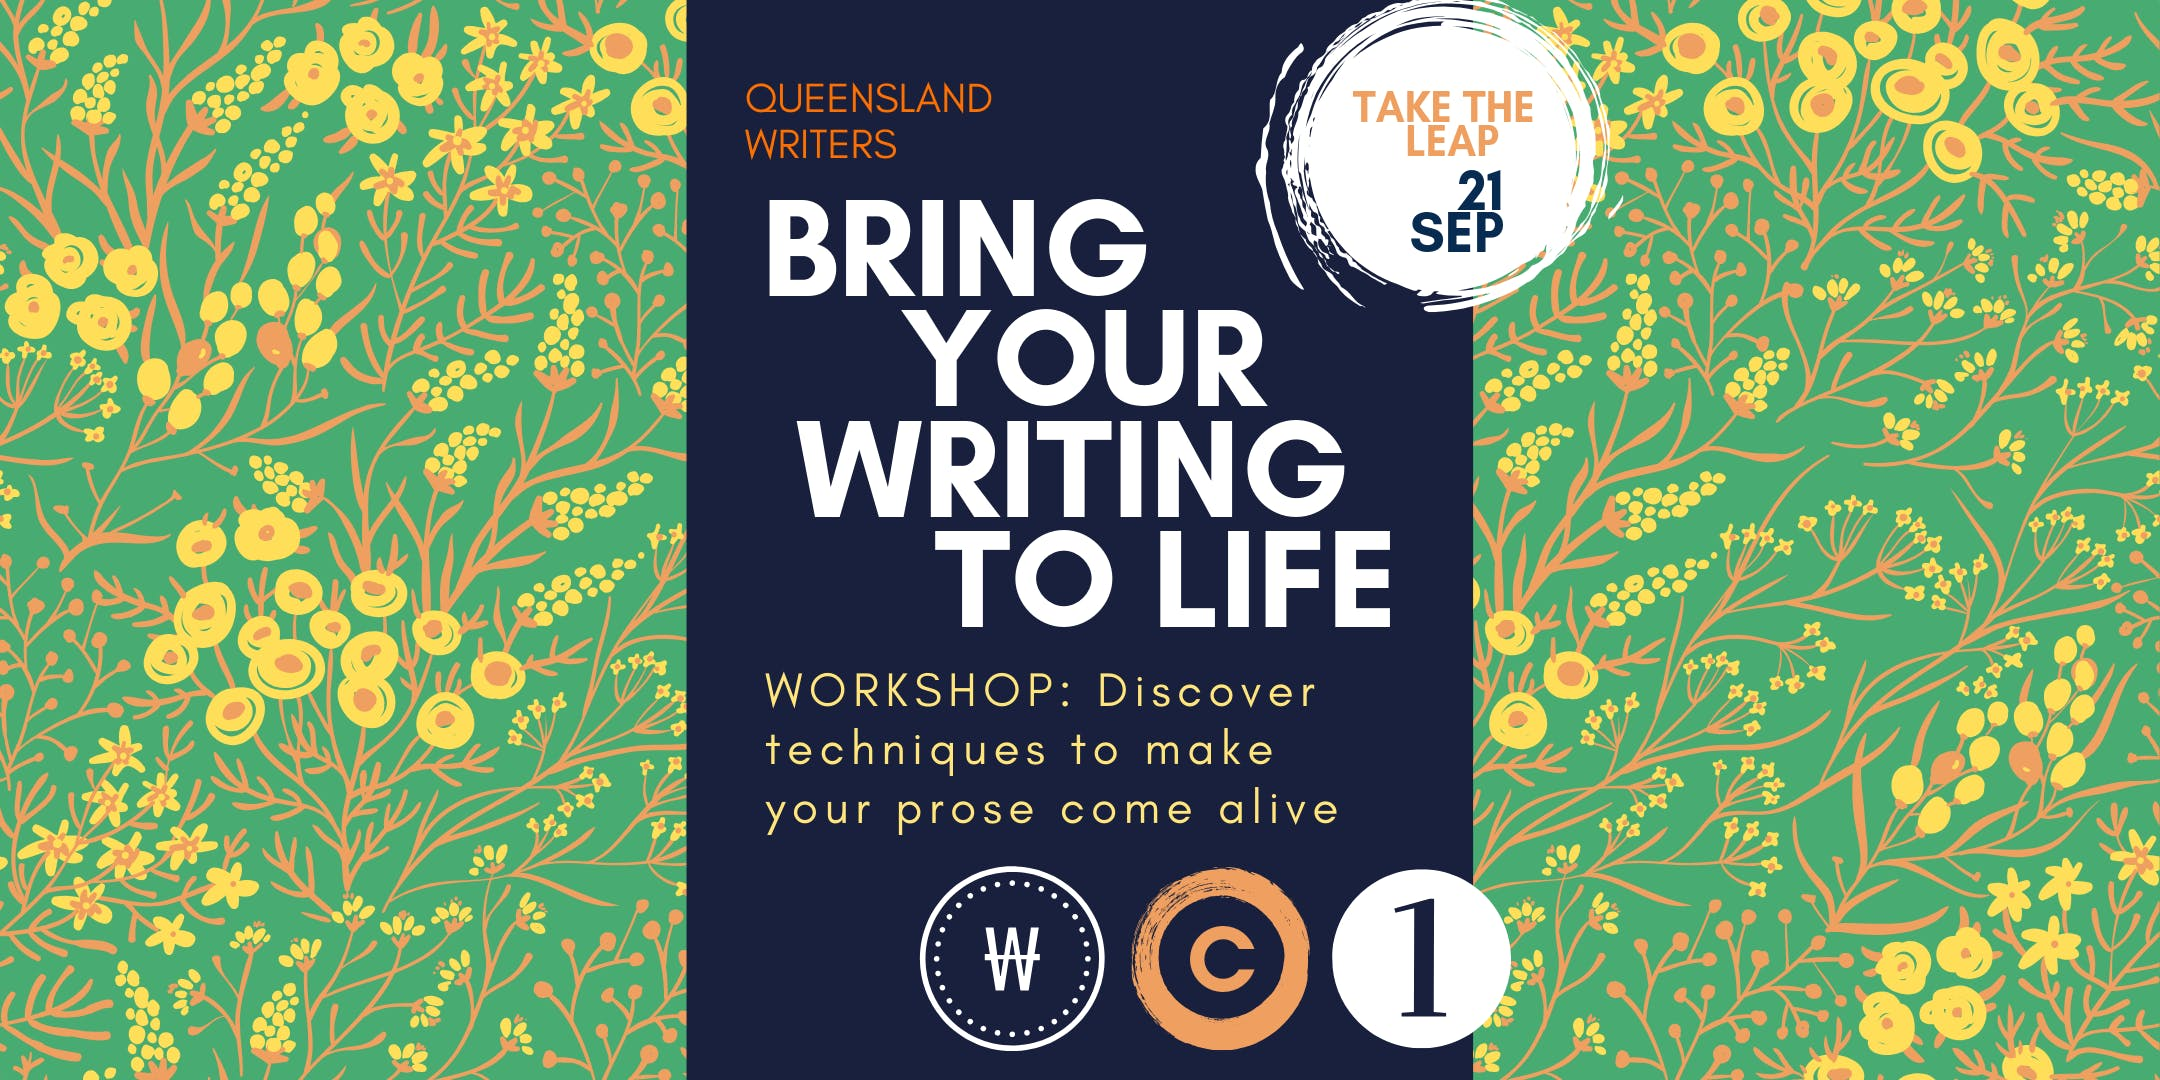 Bring Your Writing To Life with Kathryn Heyman